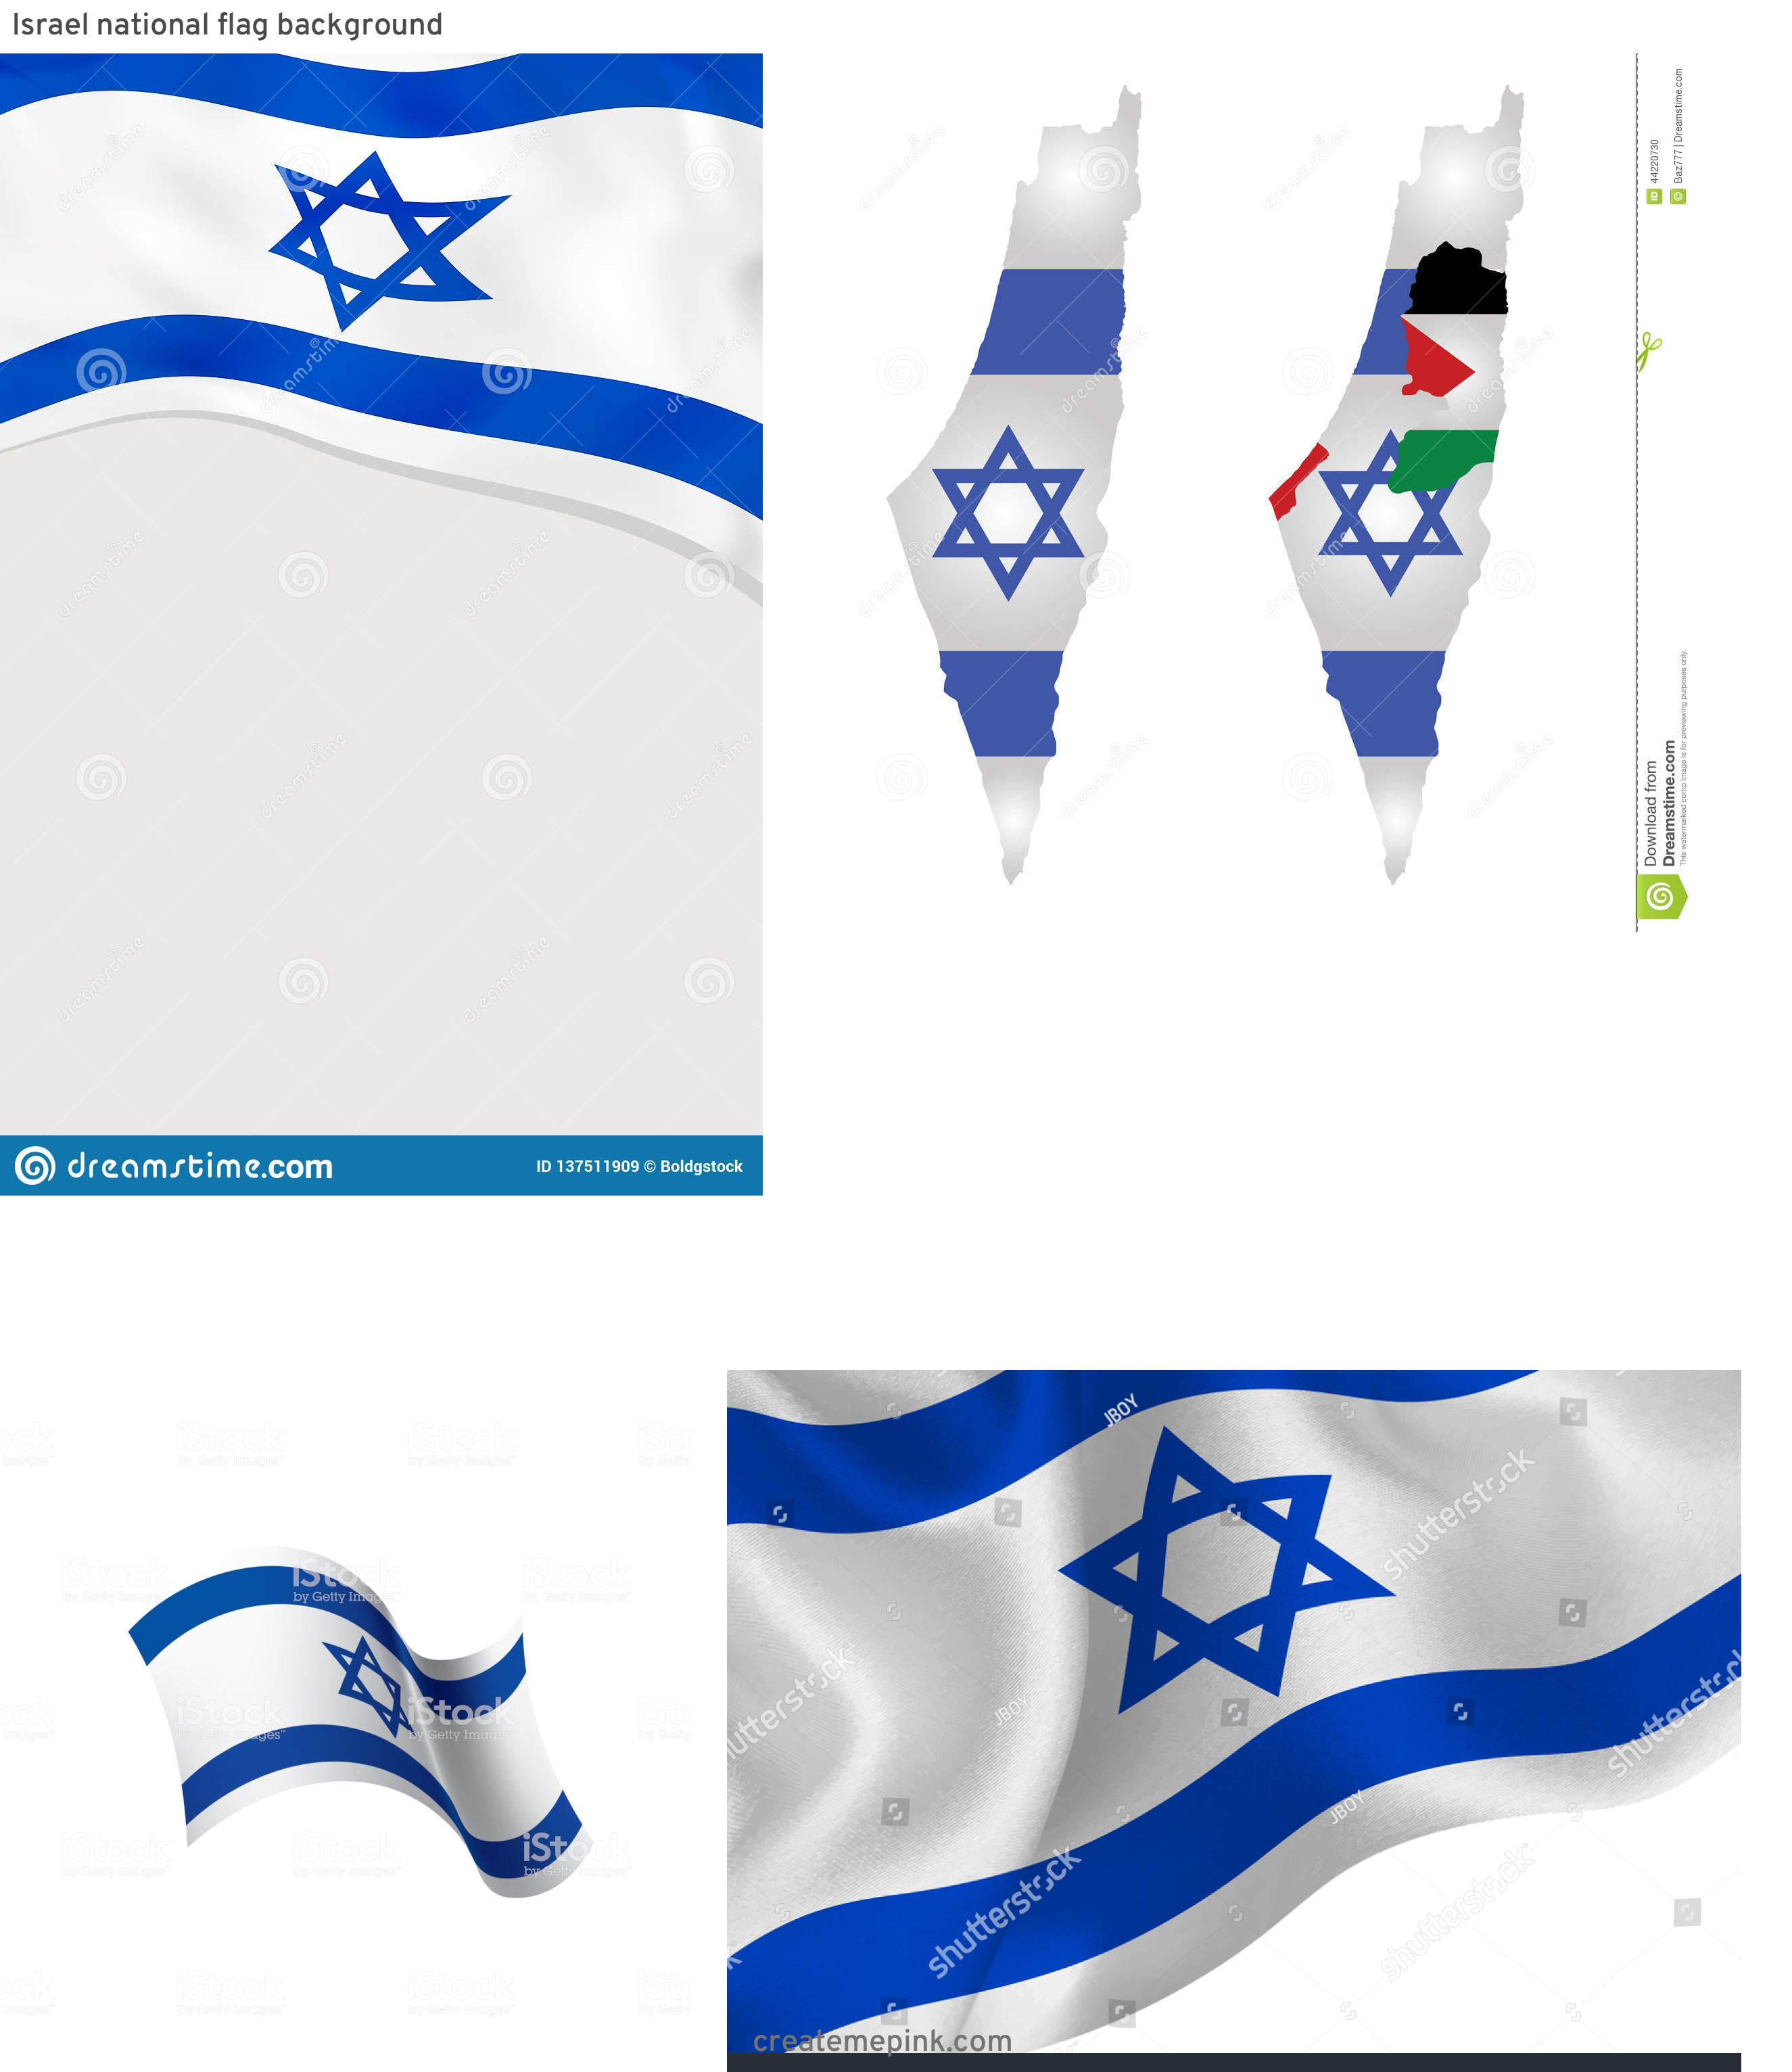 Israel And New Jersey Flag Vector: Israel National Flag Background